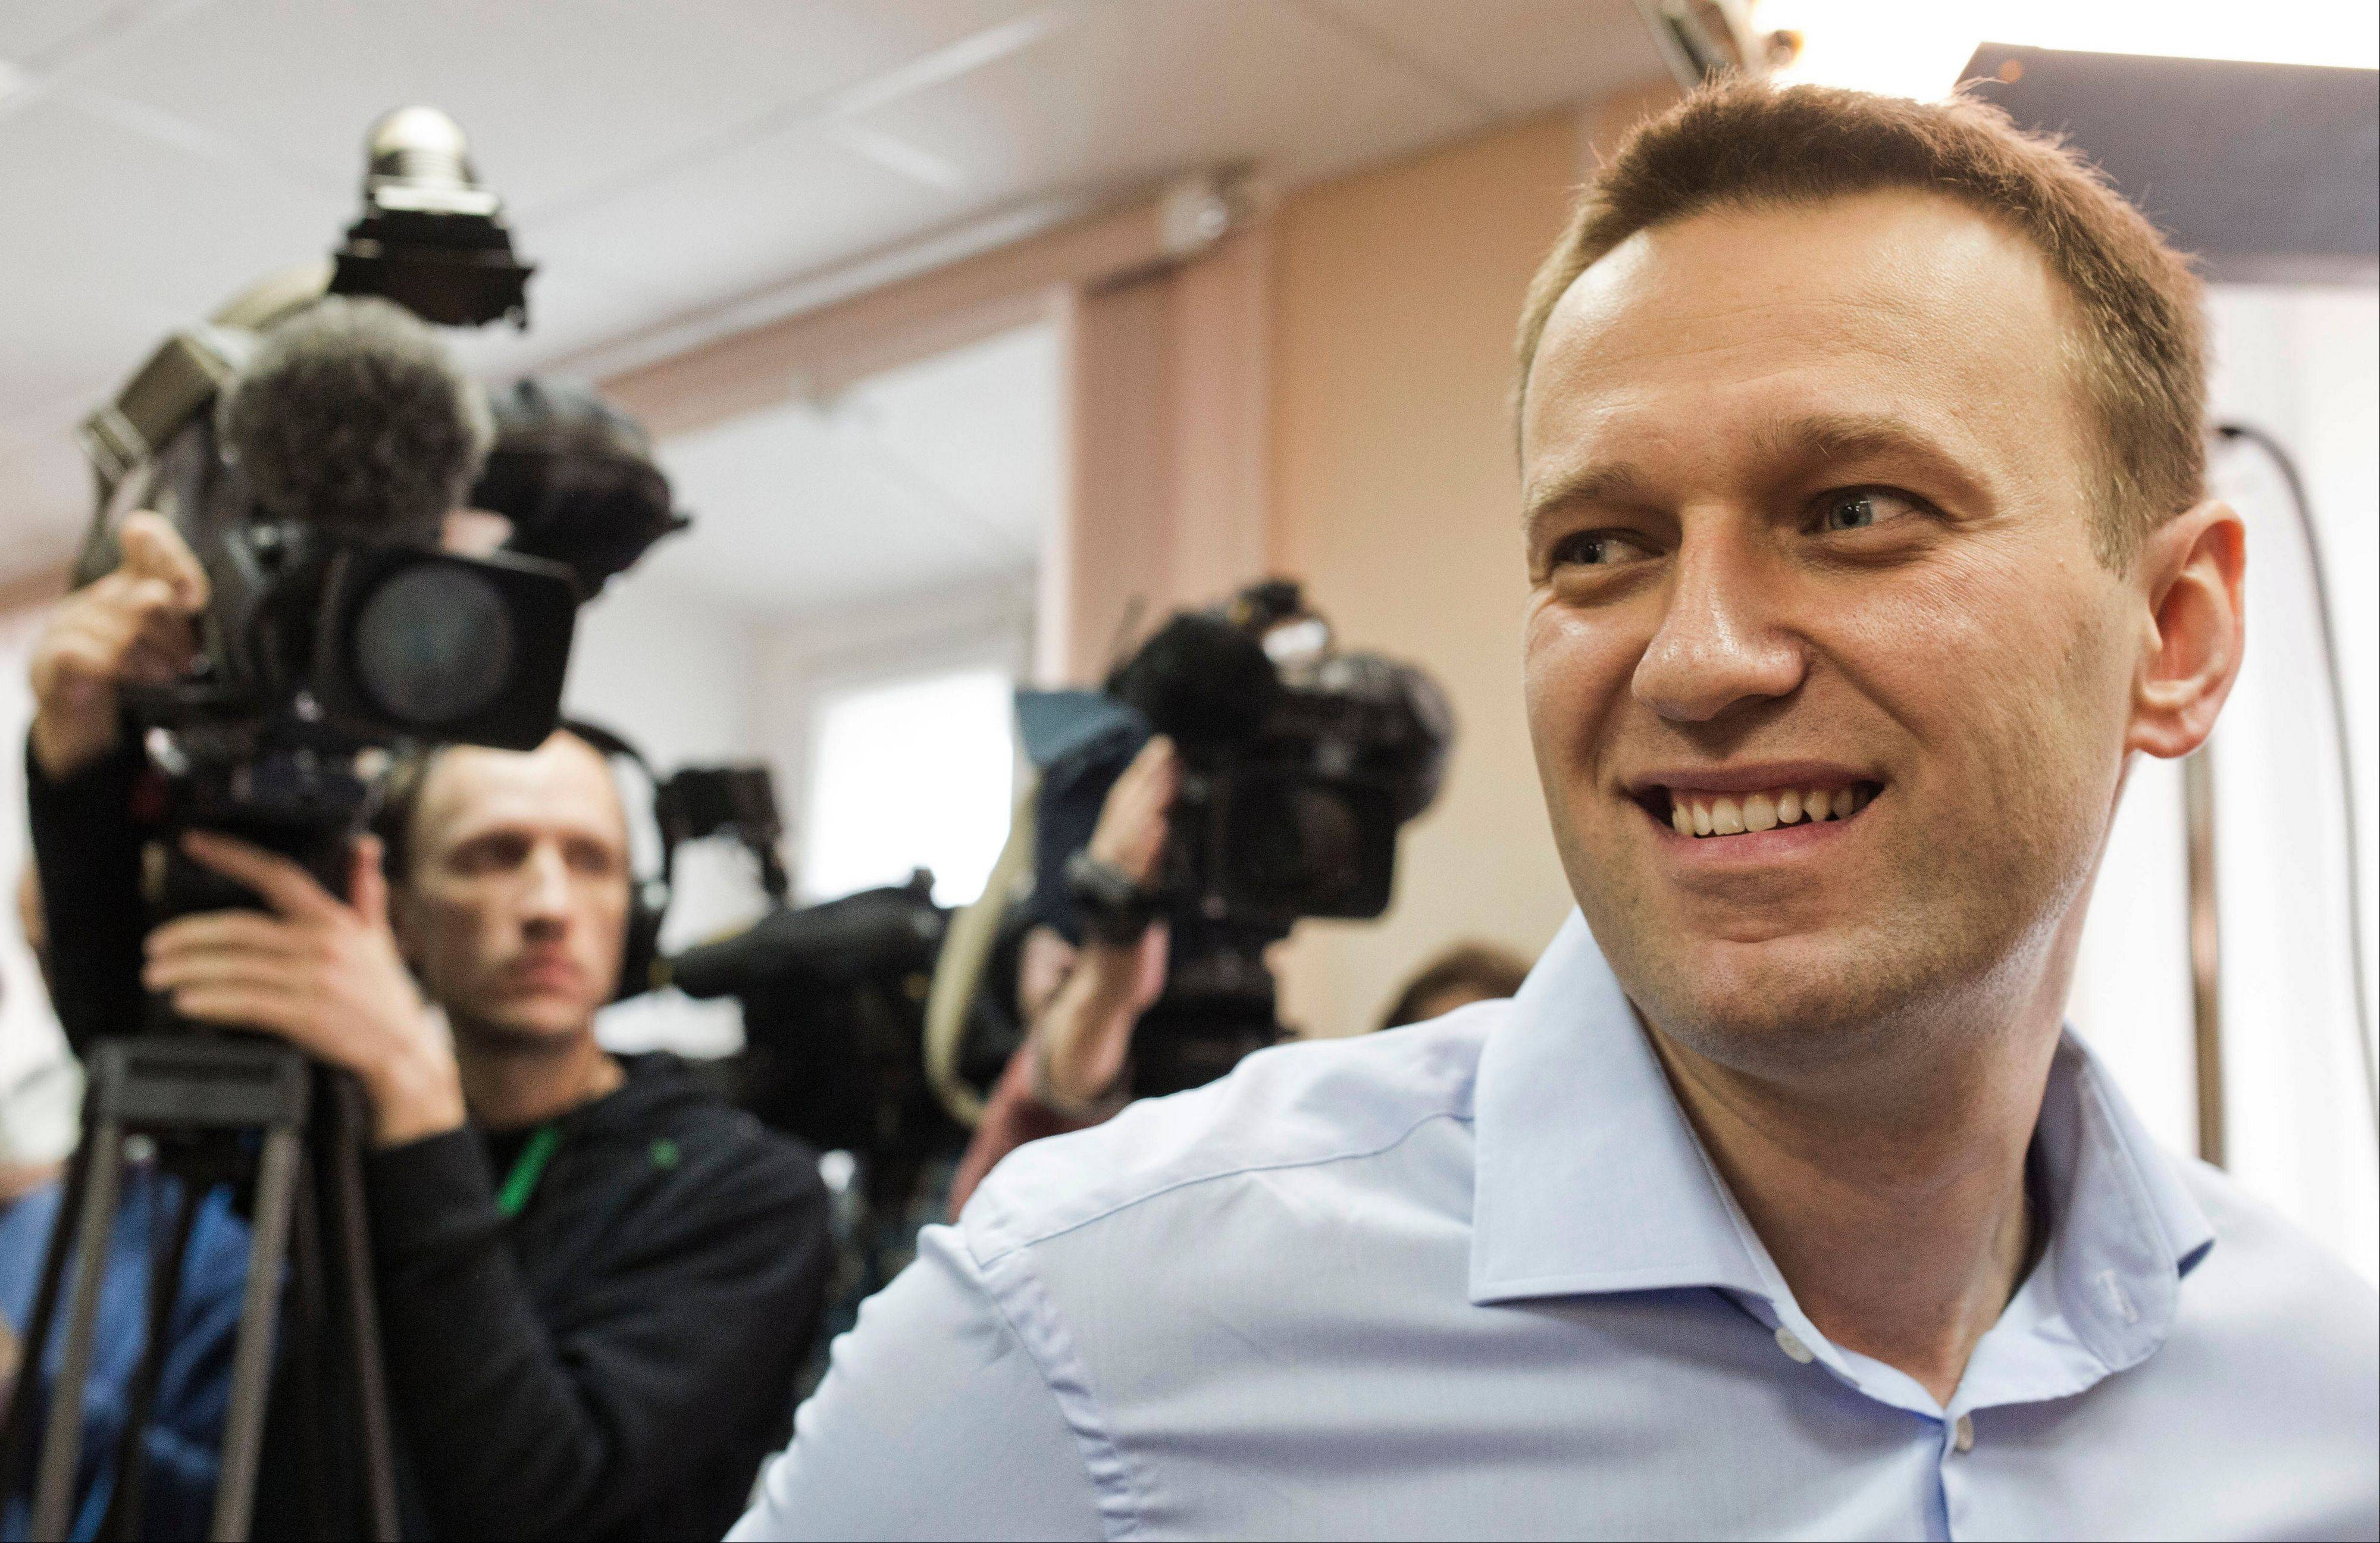 Russian opposition leader Alexei Navalny smiles in a courtroom as he attends a trial in Kirov, Russia, Wednesday, April 24, 2013. The trial has resumed in the case against a Russian opposition leader who led protests against President Vladimir Putin and exposed alleged corruption in his government. Navalny is accused of heading an organized criminal group that embezzled $500,000 worth of timber from a state-owned company.